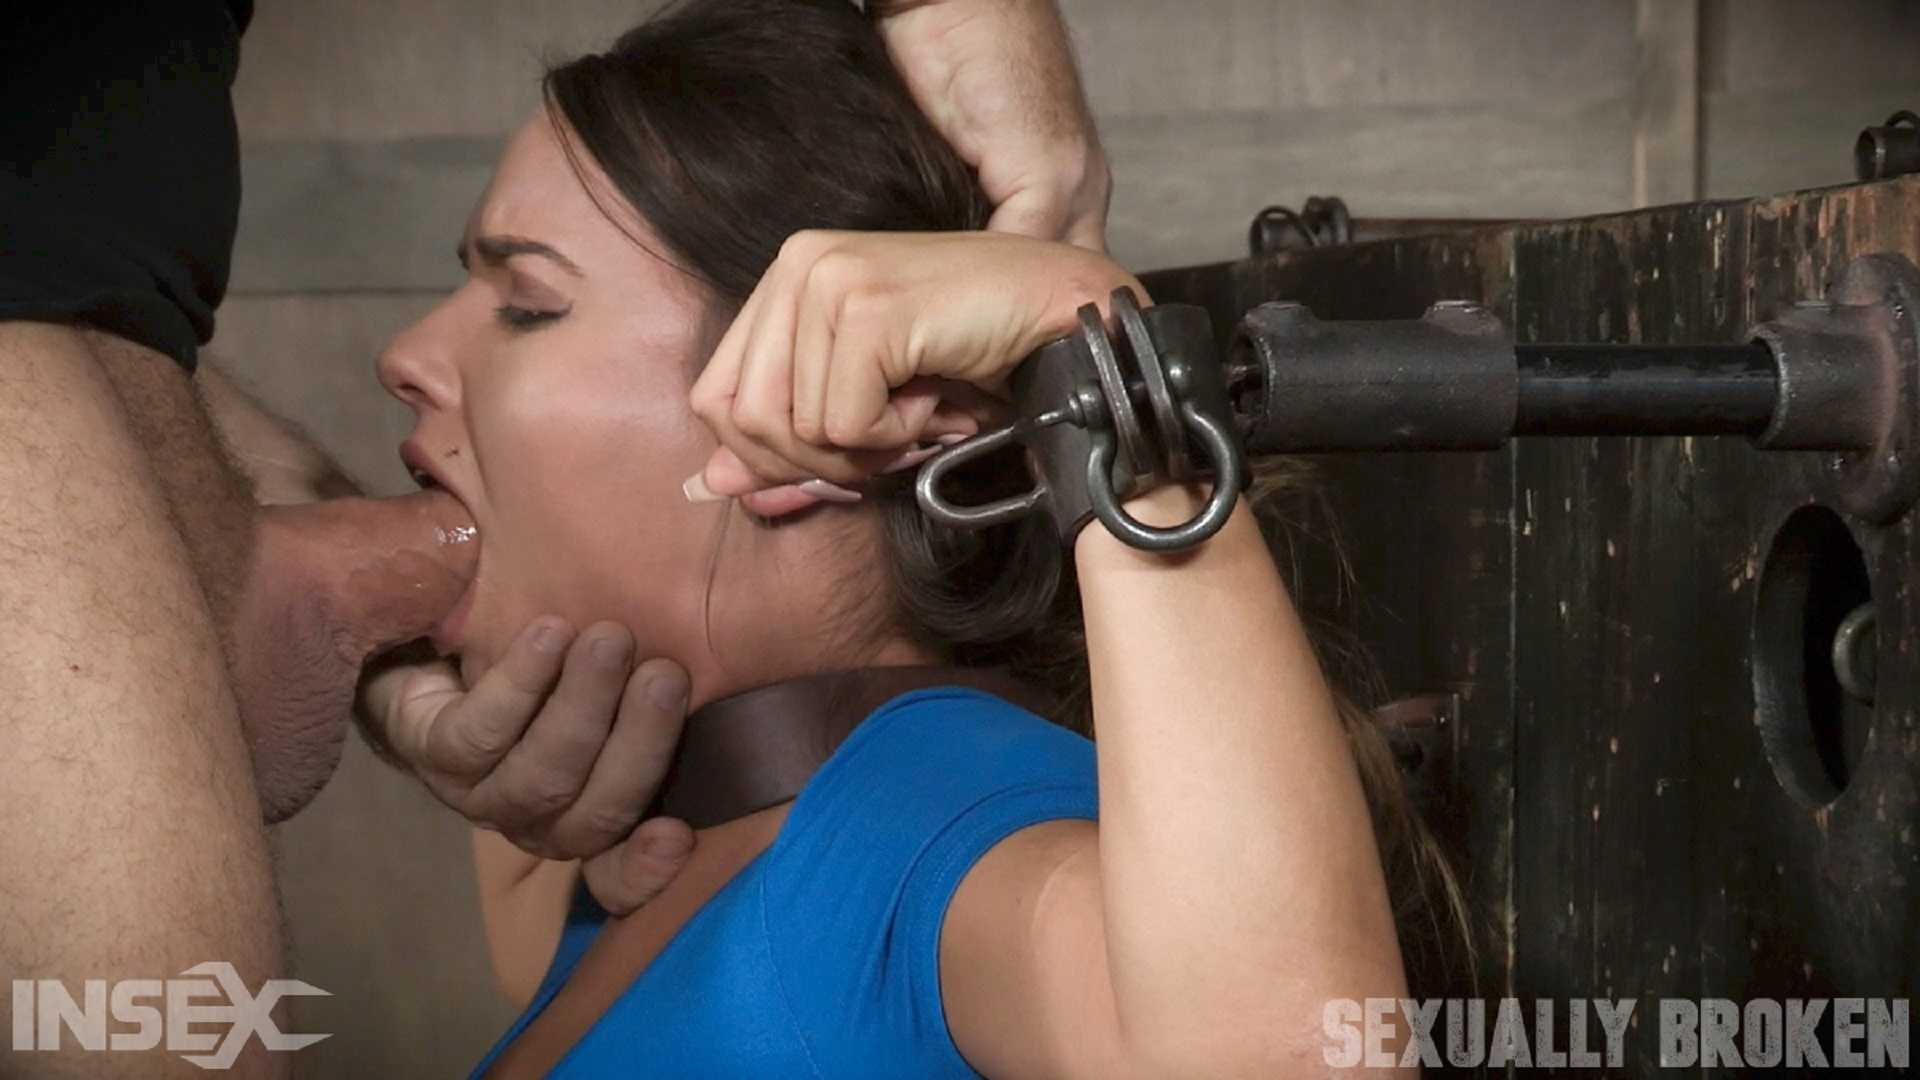 Sexy Girl Next Door has her first Bondage and rough sex experience, gets destroyed by cock | HD 720P | August 29, 2017